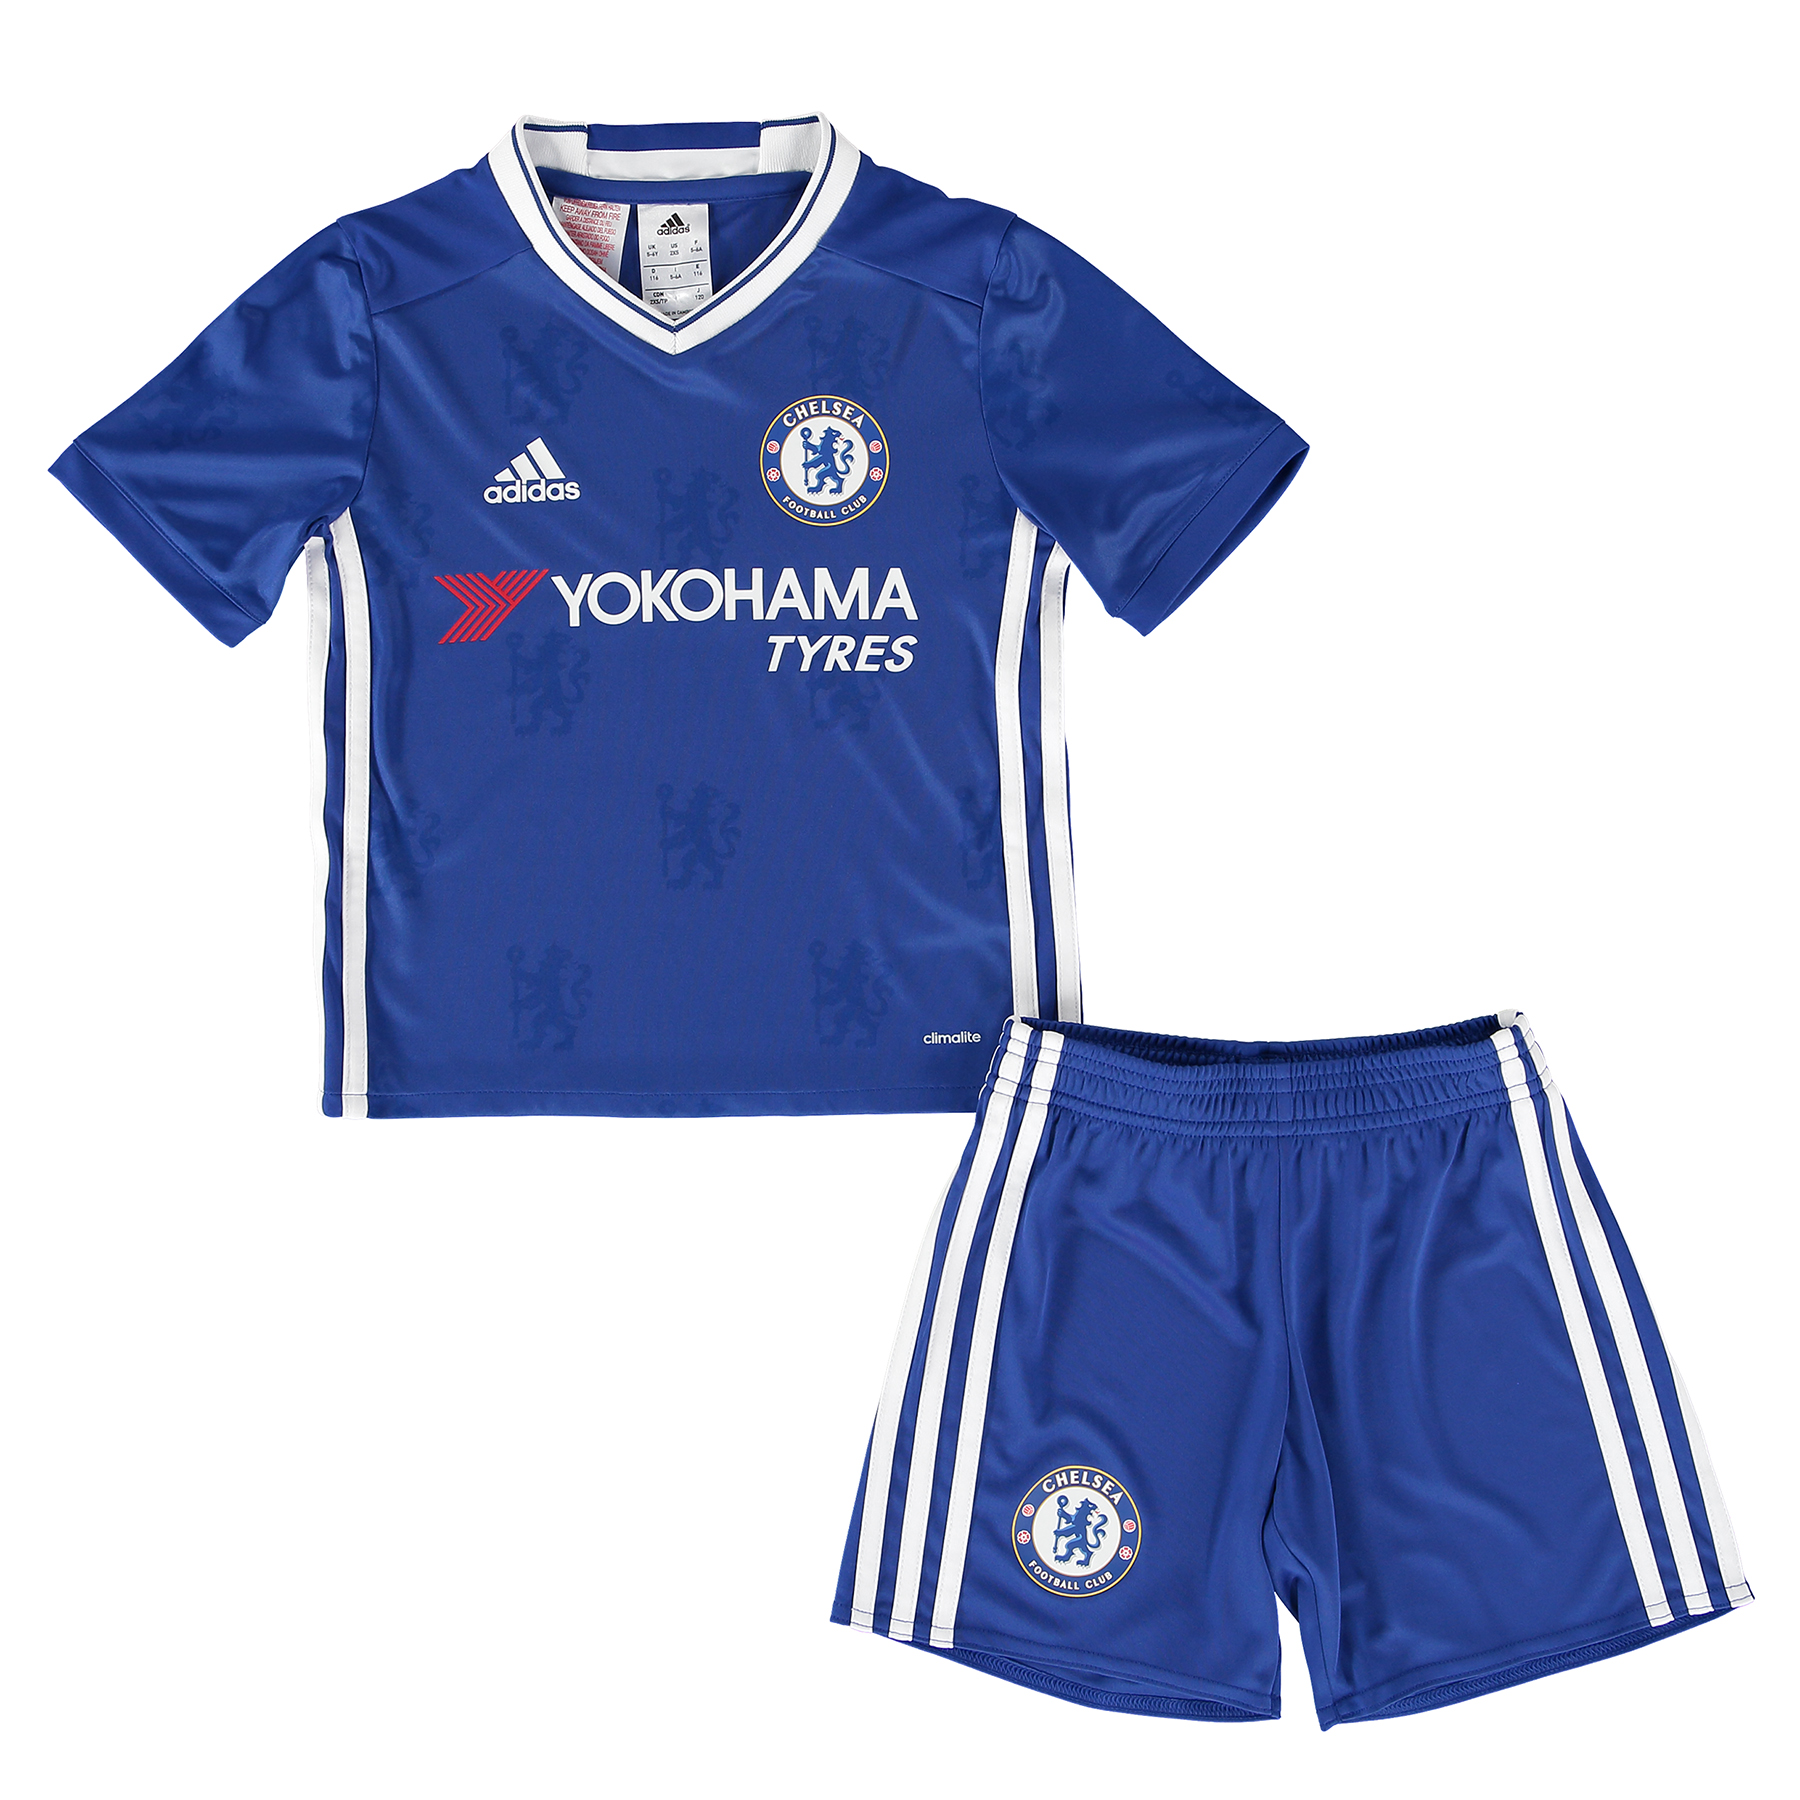 Chelsea Home Mini Kit 2016-17   Inspired by tradition and shaped by legacy, the official Chelsea Home Mini Kit 2016-17 restores a classic Stamford Bridge image, with its vintage v-collar design drawing allusion to years gone by.   With the club crest's central lion motif forming the basis of a unique, all-over pattern print, the 2016-17 Chelsea home mini kit's Three Stripe branding features in a contemporary side placement, completing a winning mix of old and new for the Blues' renewed title challenge.   Specially-designed for younger supporters, this mini kit uses soft and lightweight climalite® fabric technology to provide superior moisture management.   Benefits:   Printed fabric Club crest: heat transfer climalite® soft, lightweight fabric Engineered Chelsea FC sign off on collar 100% recycled polyester